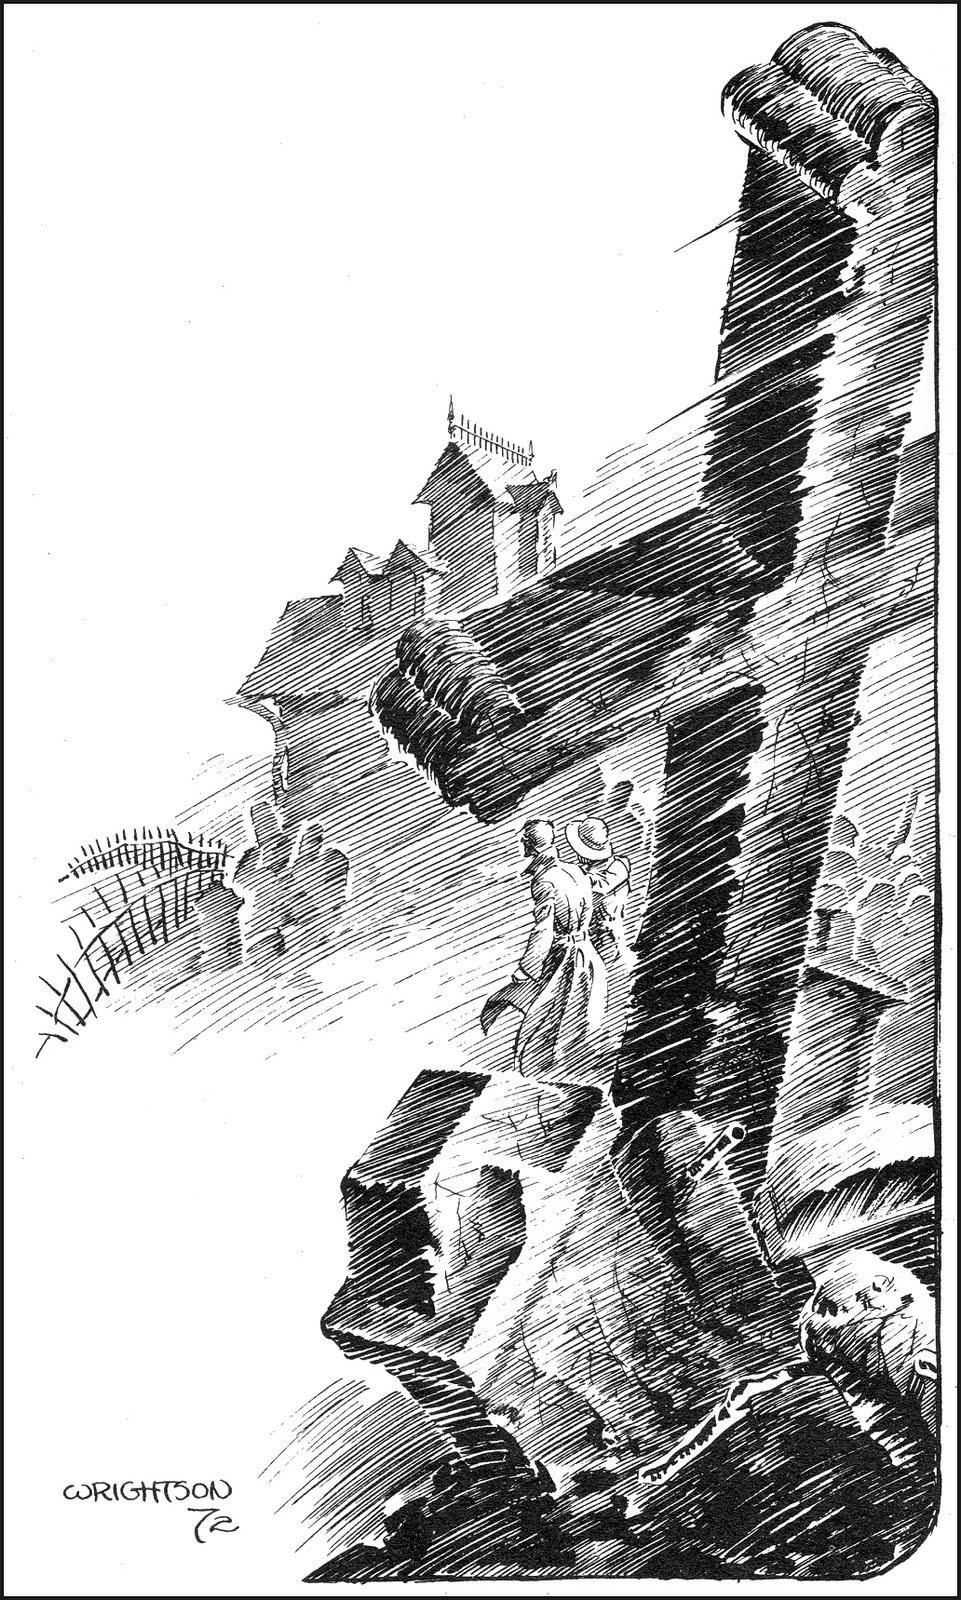 e03ad66ca74c6 Berni Wrightson—great use of negative space, could see awesome text wraps